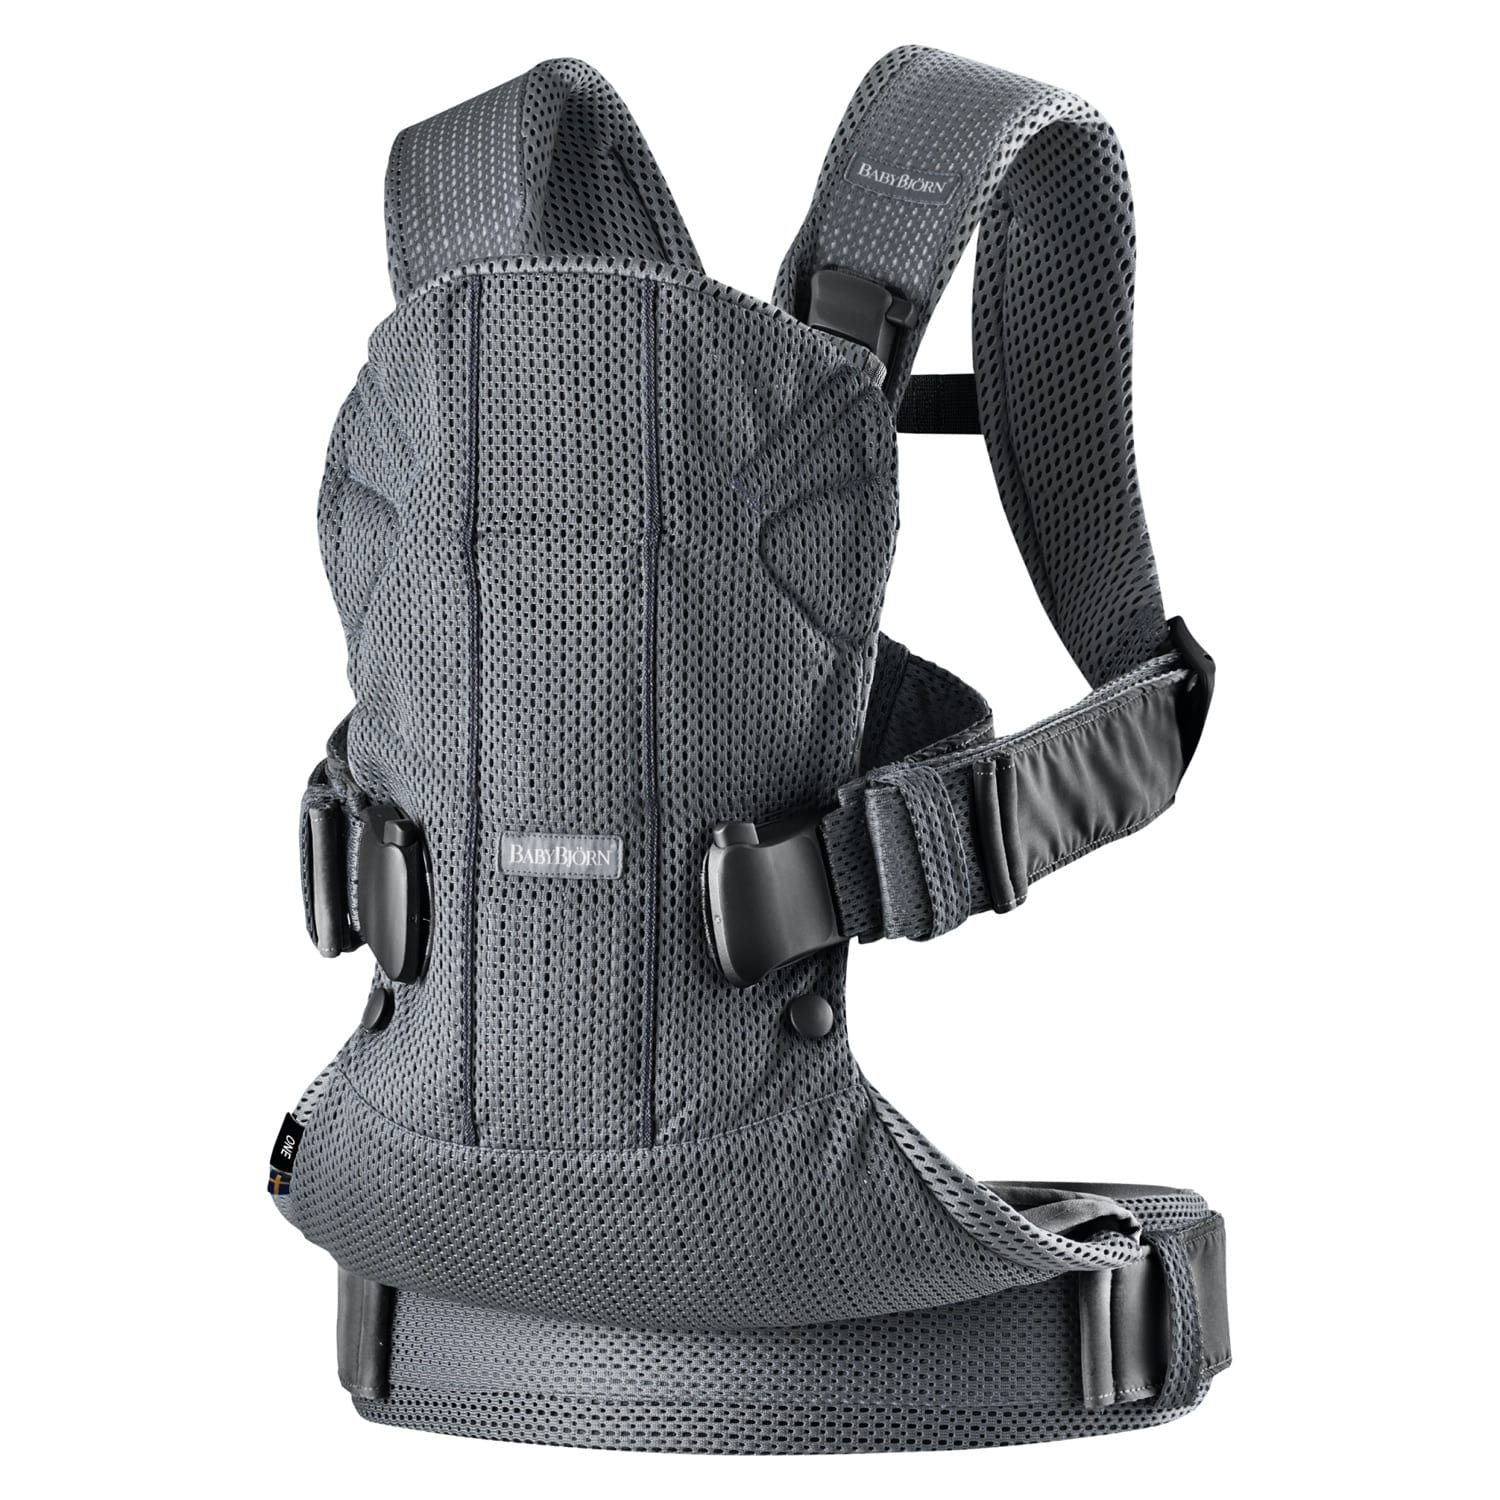 BabyBjorn Carrier One Air product image